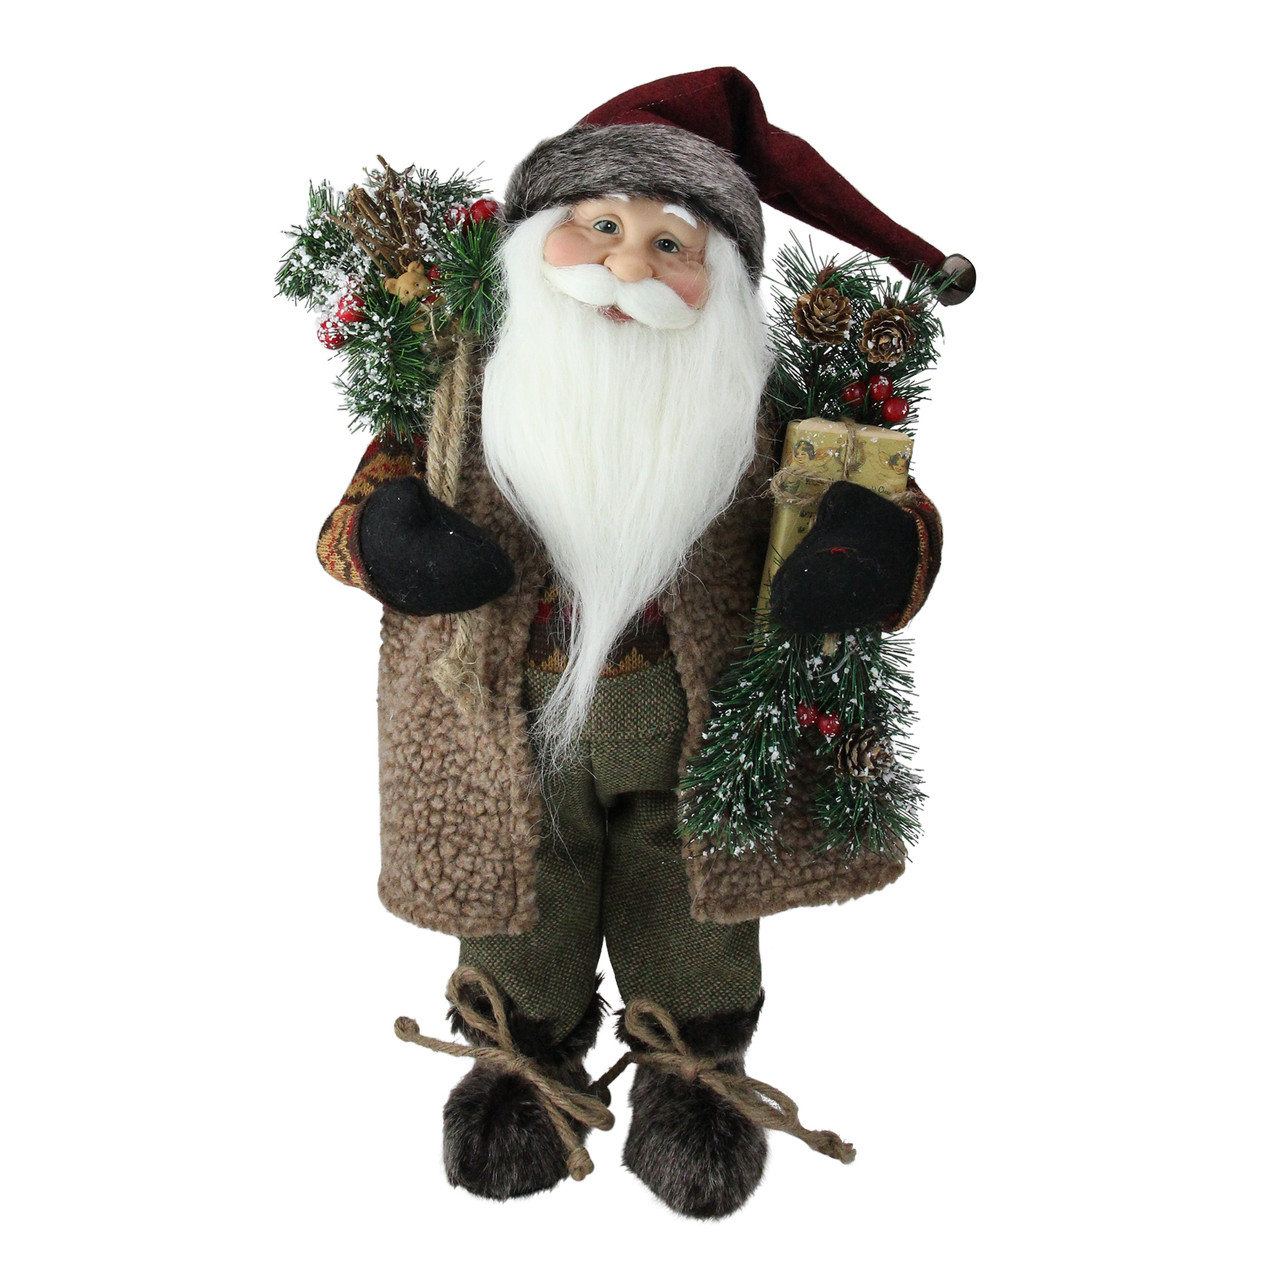 16 Country Rustic Standing Santa Claus Christmas Figure With Present Christmas Central